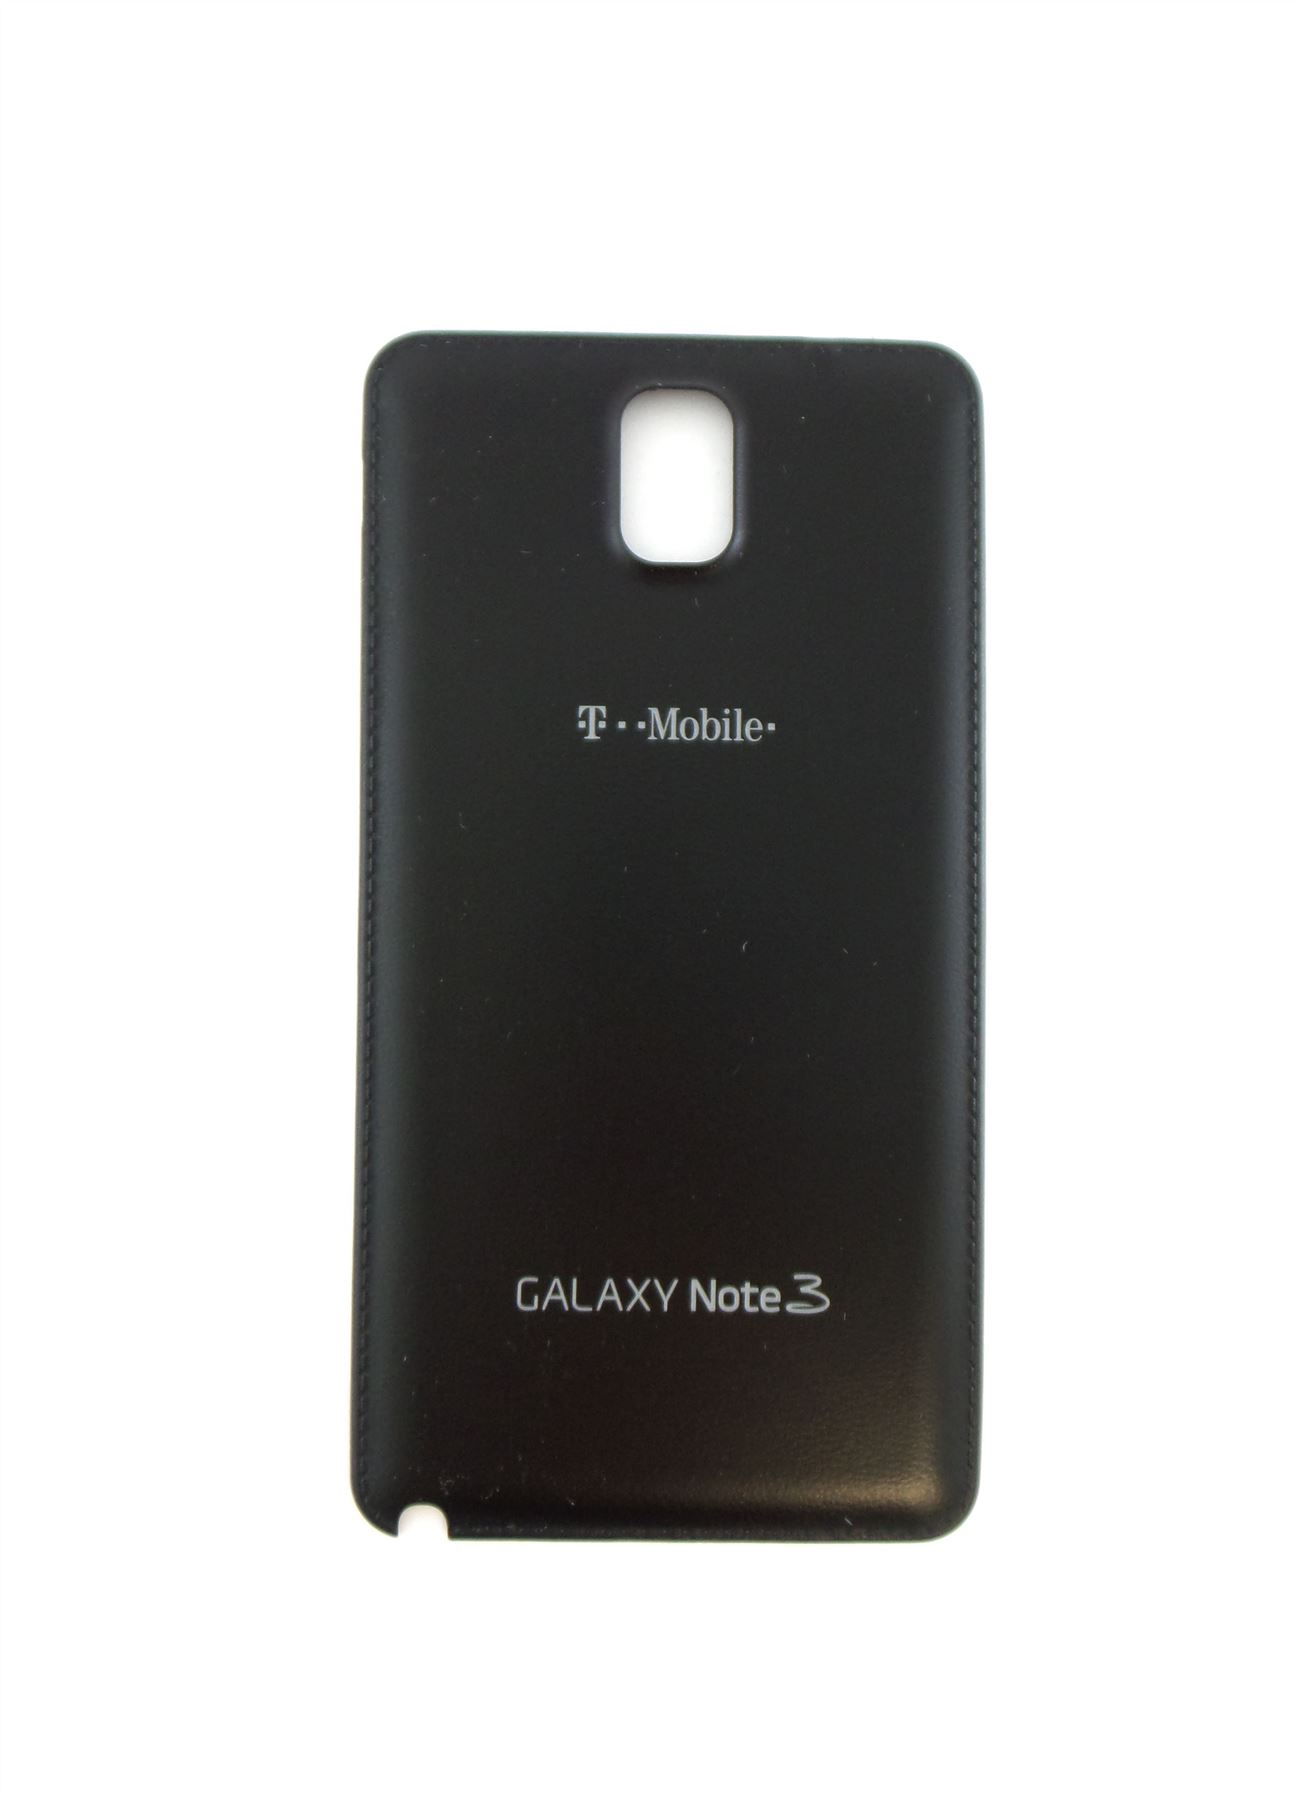 samsung galaxy note 3 battery back door covers for at t t mobile verizon sprint ebay. Black Bedroom Furniture Sets. Home Design Ideas